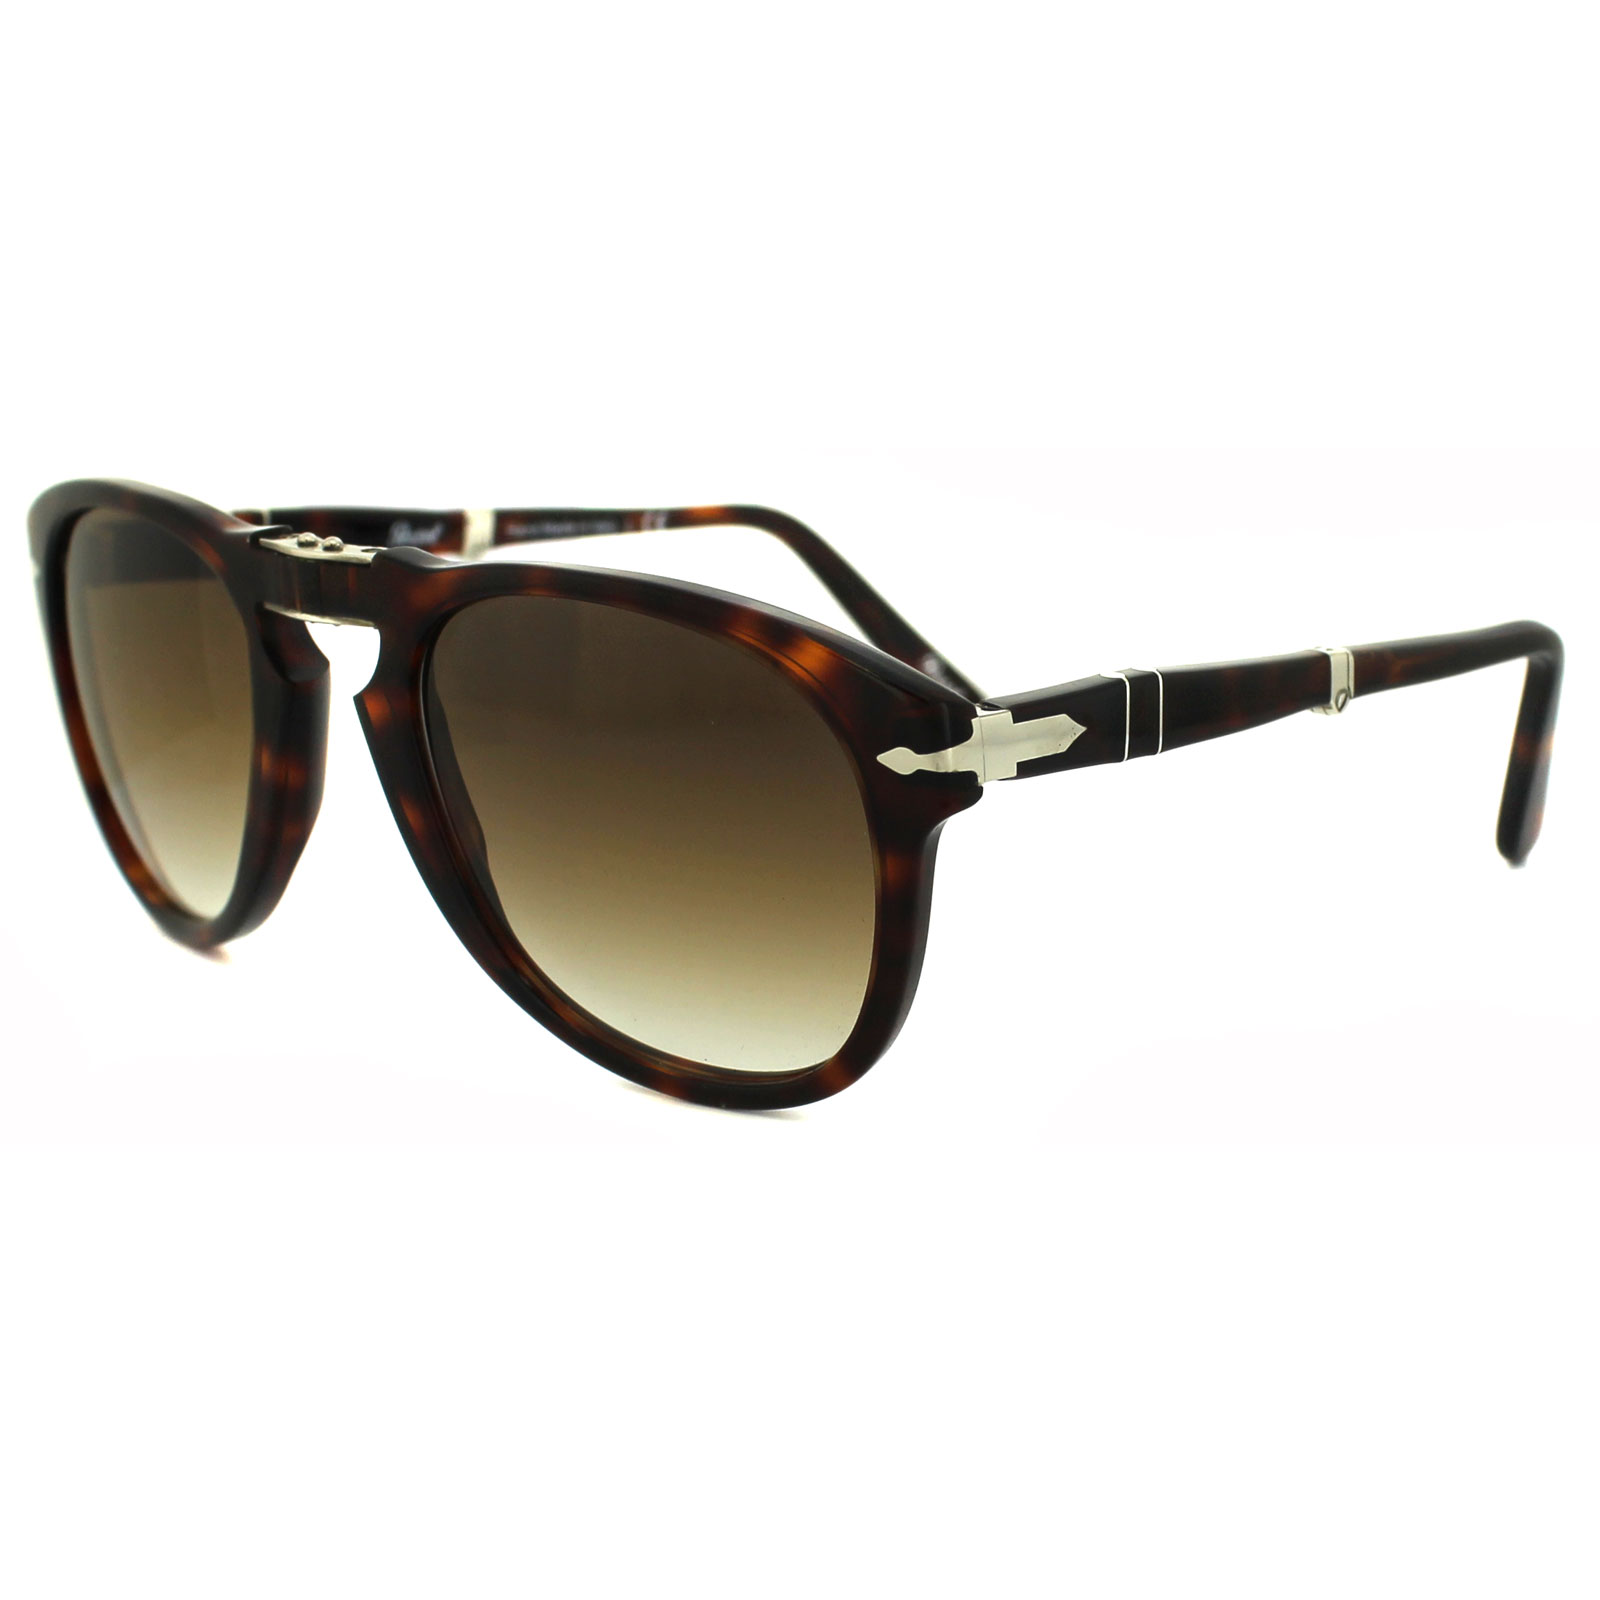 f2e89e99c6c Sentinel Persol Sunglasses 0714 24 51 Havana Brown Gradient Folding Steve  McQueen 52mm